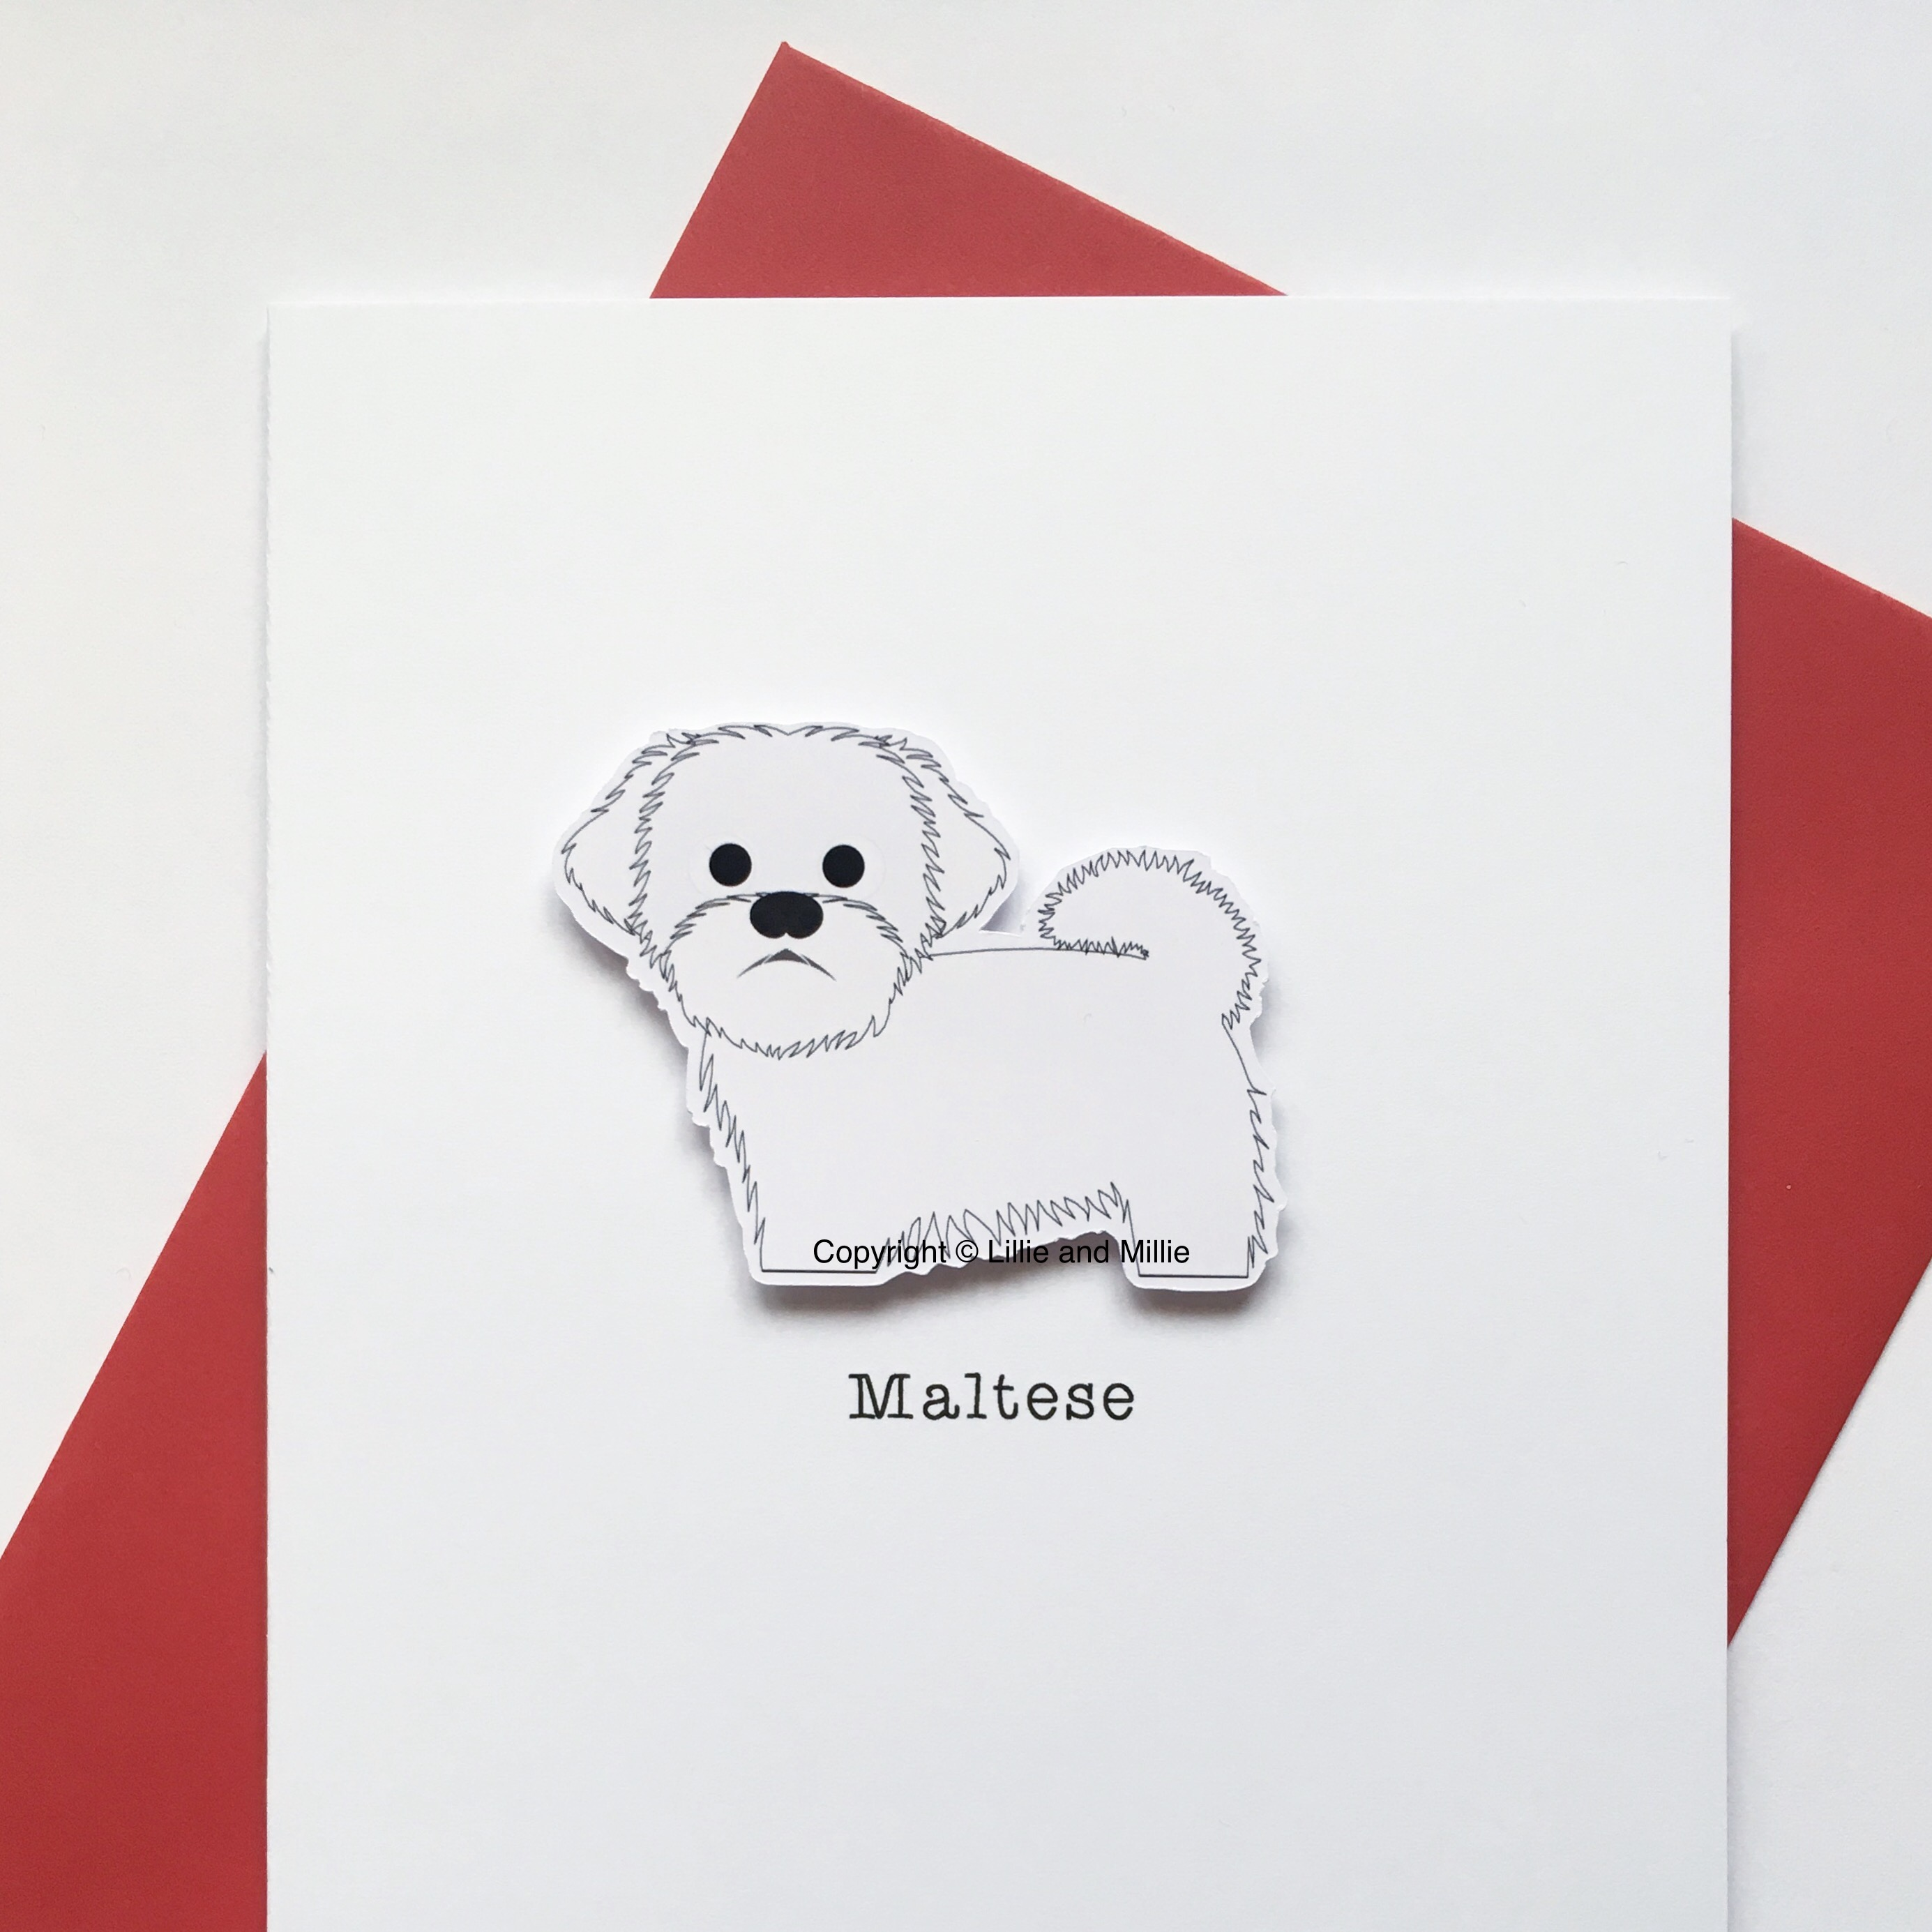 Maltese Dog Greetings Card